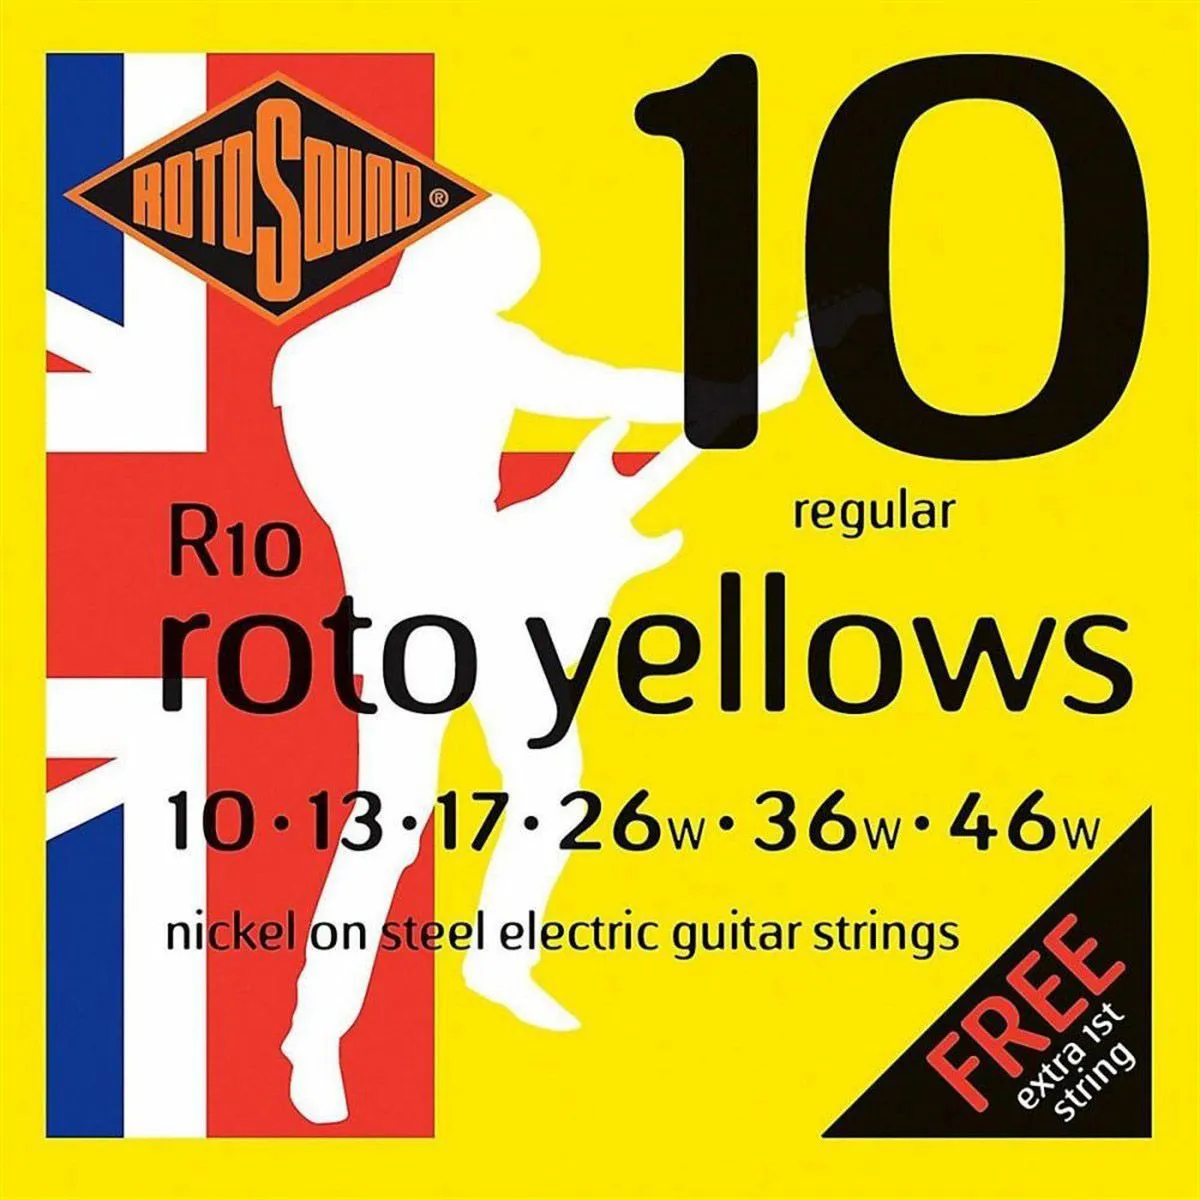 Encordoamento Rotosound R10 Yellow 010/046 para Guitarra